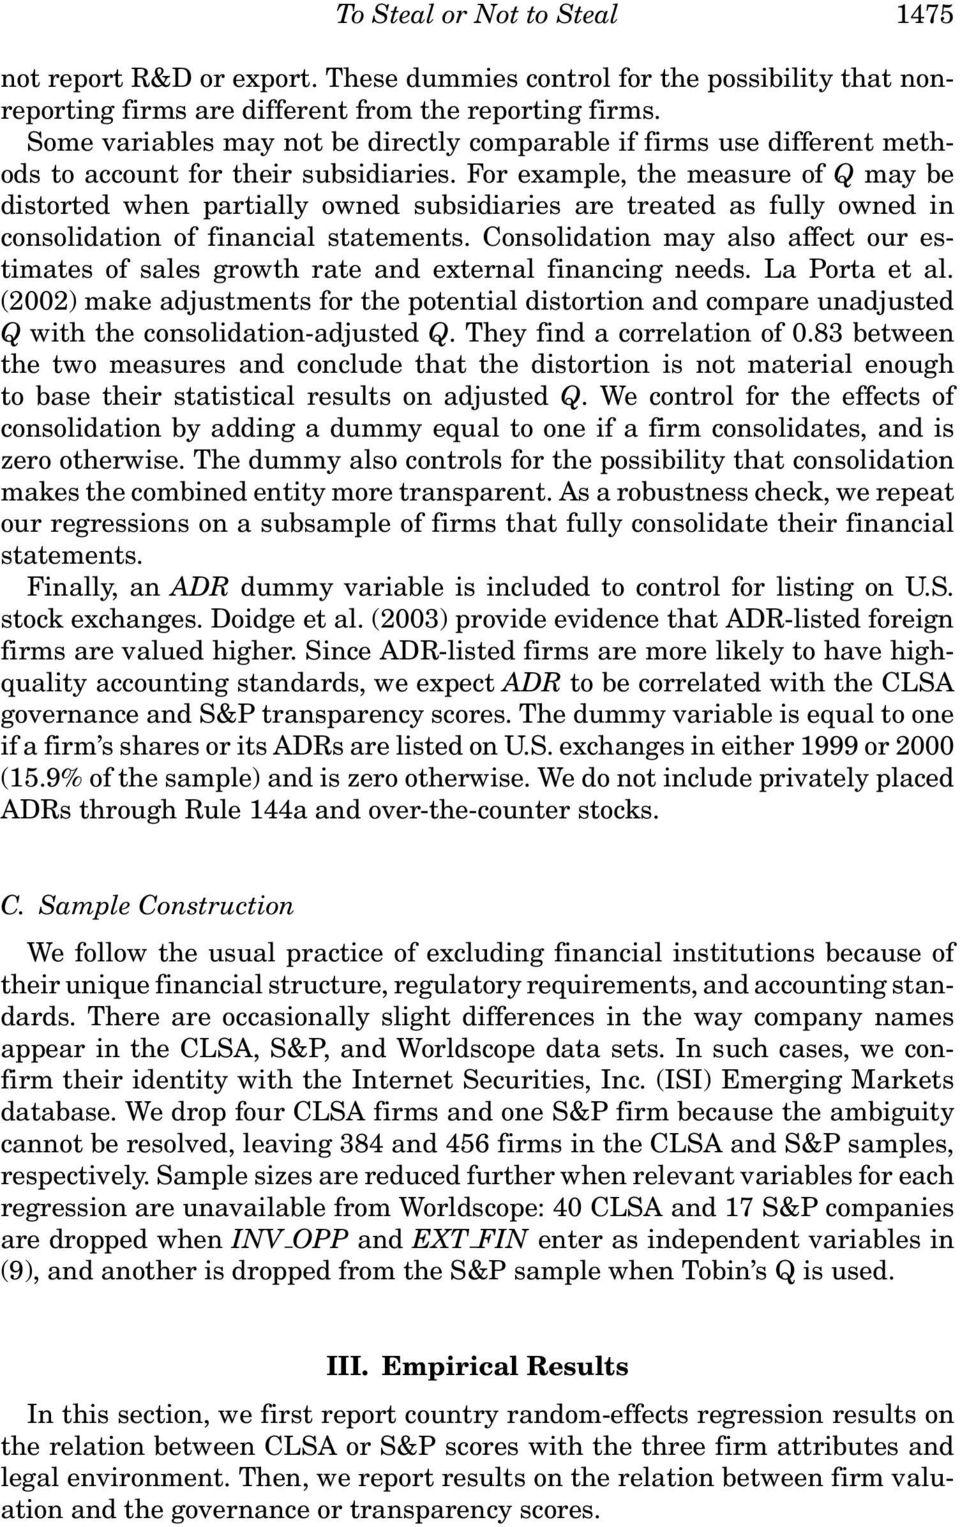 For example, the measure of Q may be distorted when partially owned subsidiaries are treated as fully owned in consolidation of financial statements.